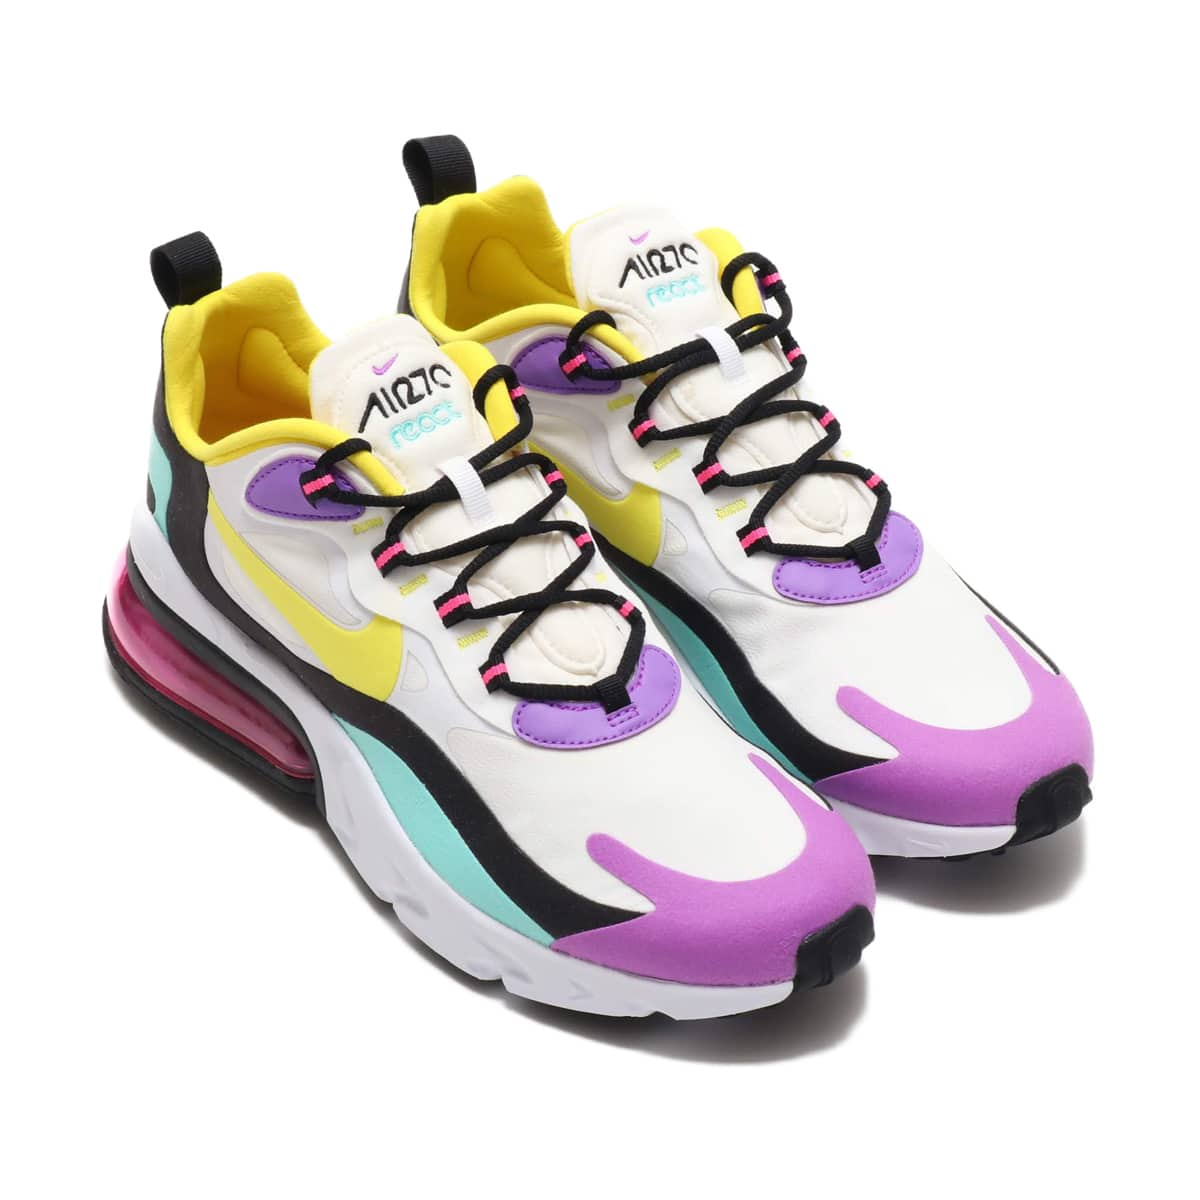 NIKE AIR MAX 270 REACT WHITE/DYNAMIC YELLOW-BLACK-BRIGHT VIOLET 19FA-S_photo_large